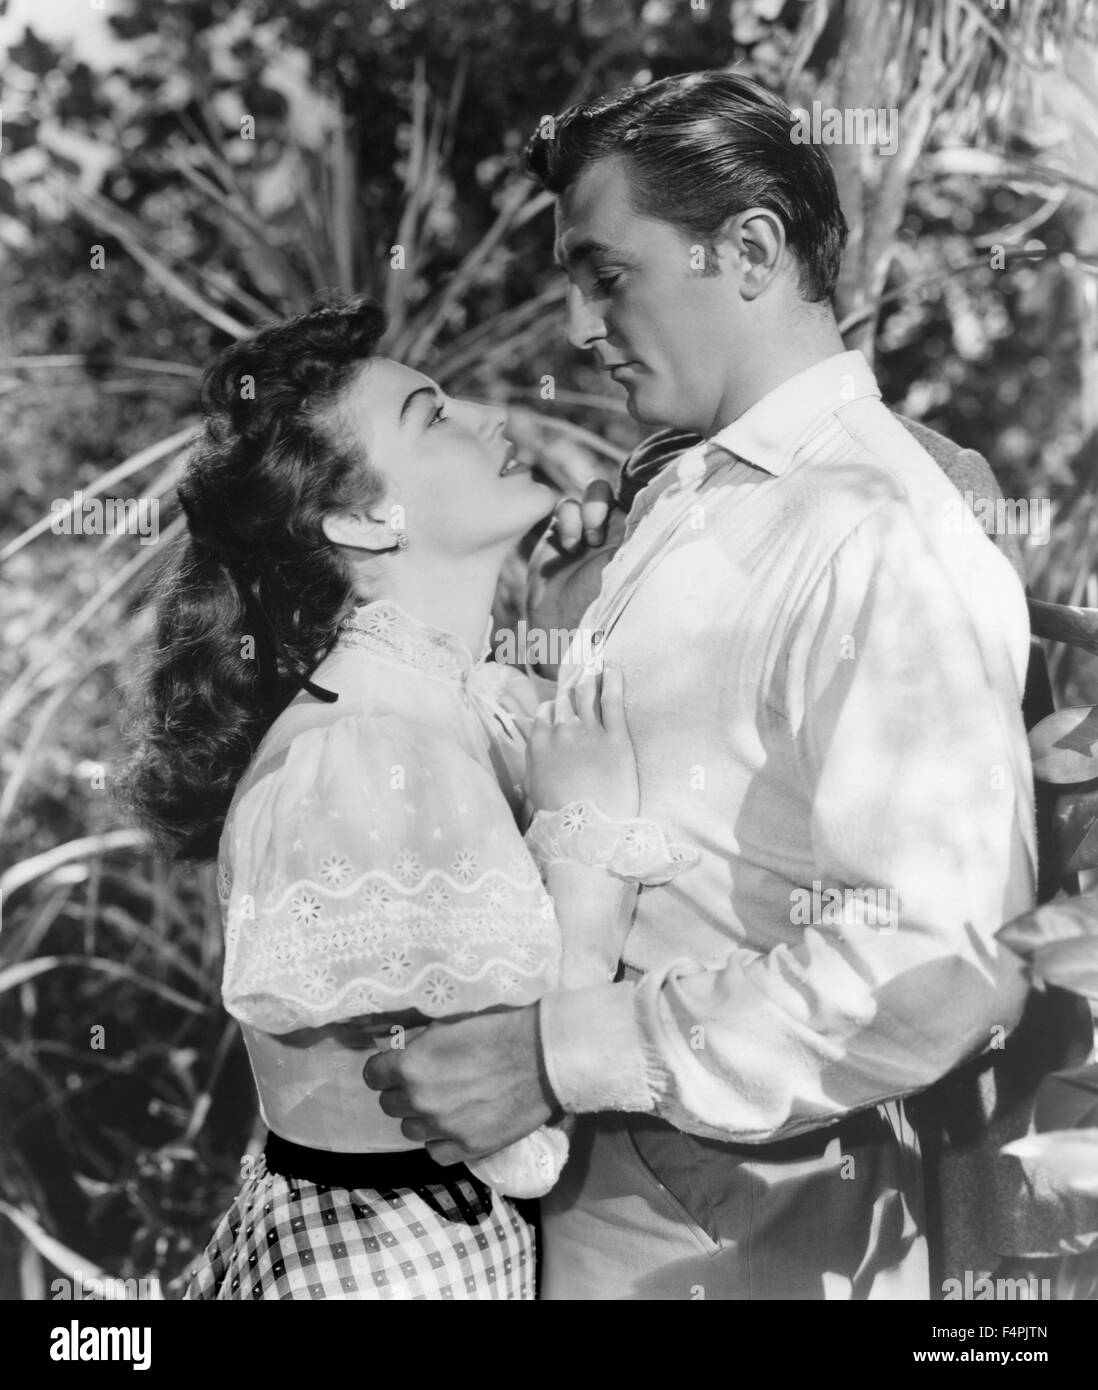 Ava Gardner and Robert Mitchum / My Forbidden Past / 1951 directed by Robert Siodmak [R.K.O. Radio Picture] - Stock Image